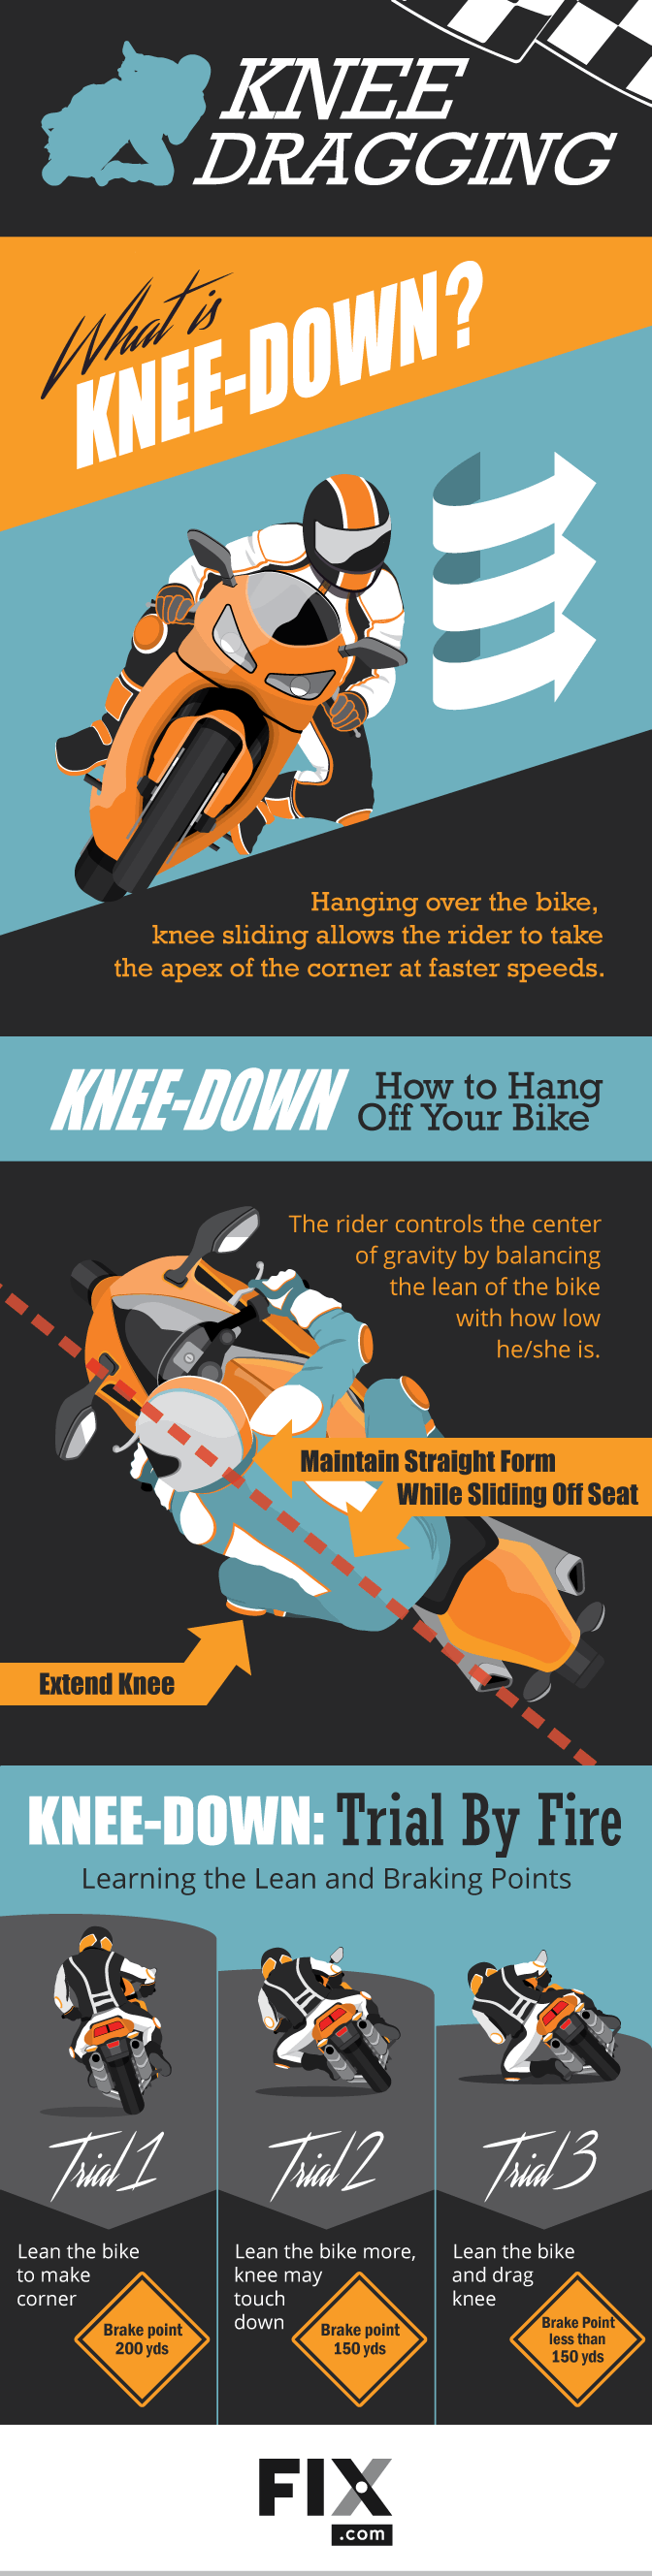 How to Ride Knee Down